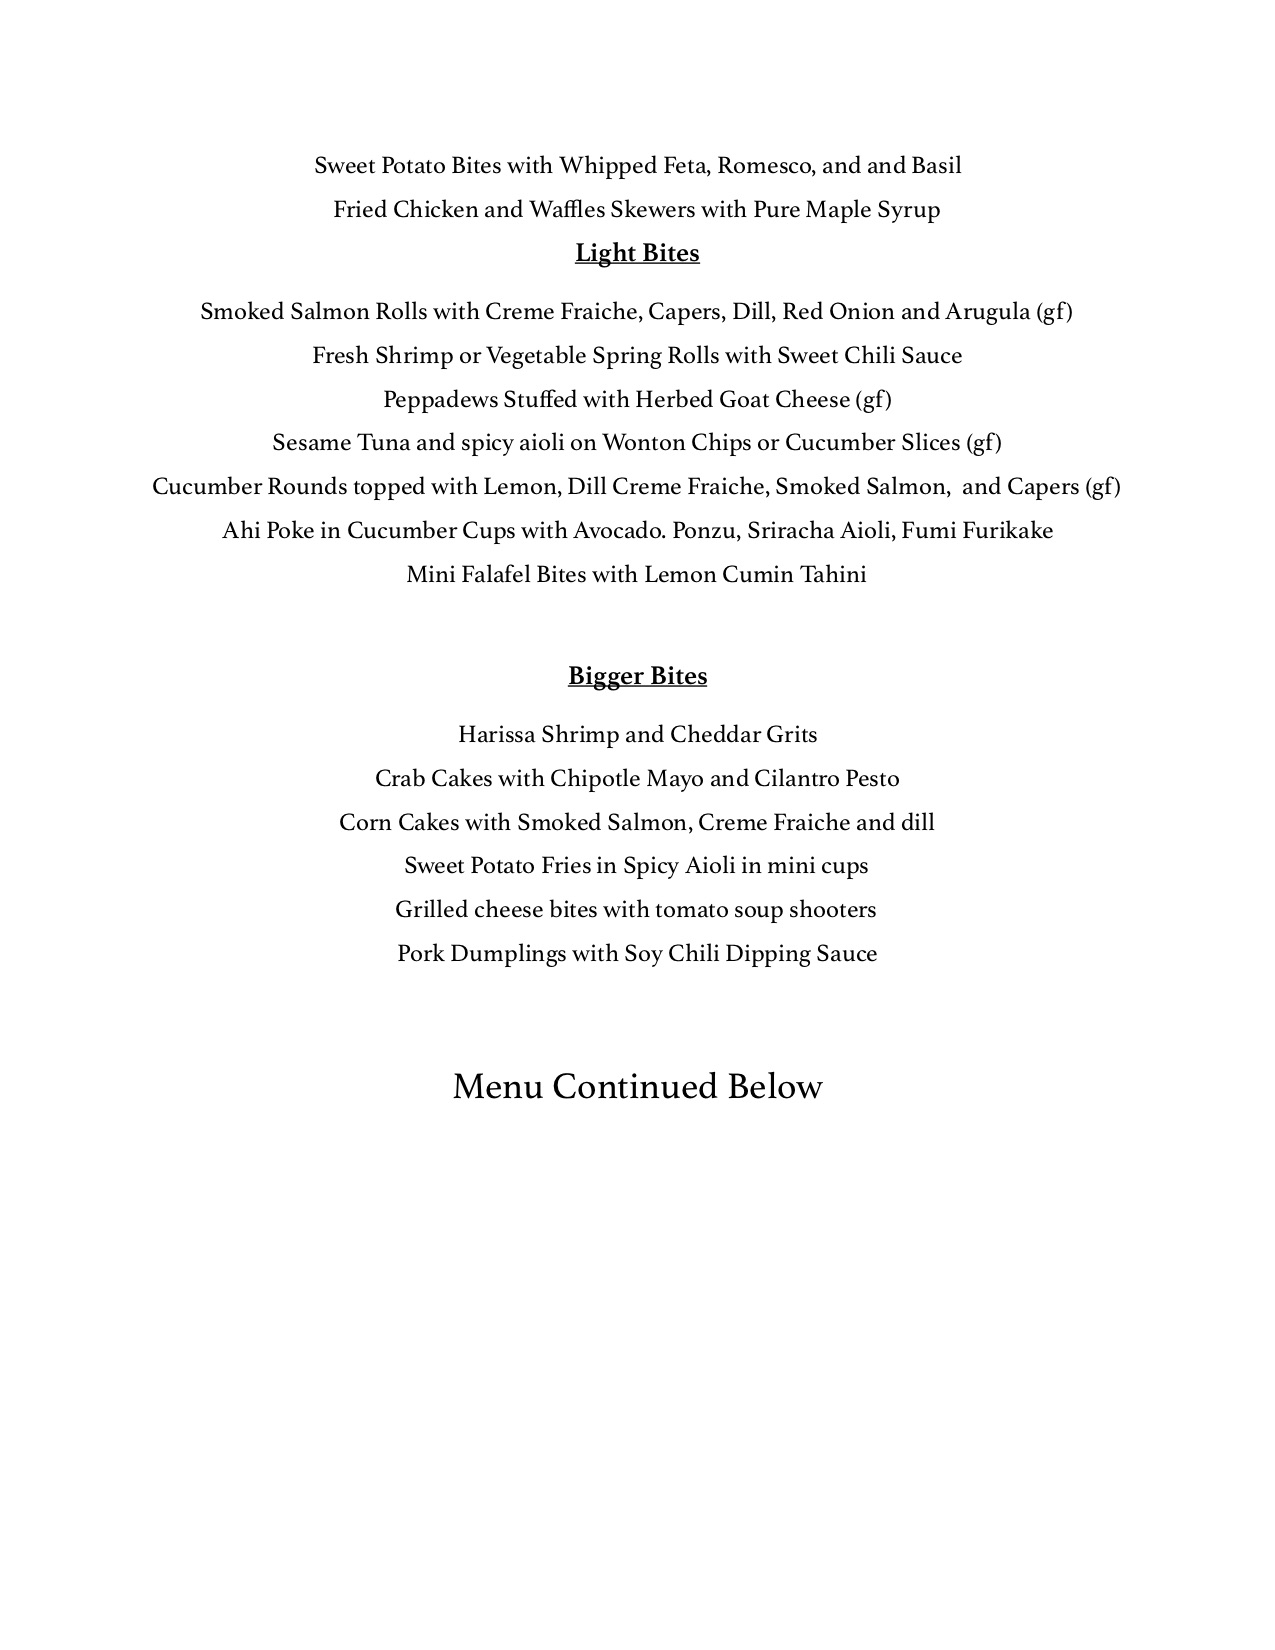 Spotted Hen Full Service and Wedding Menu 4.jpg